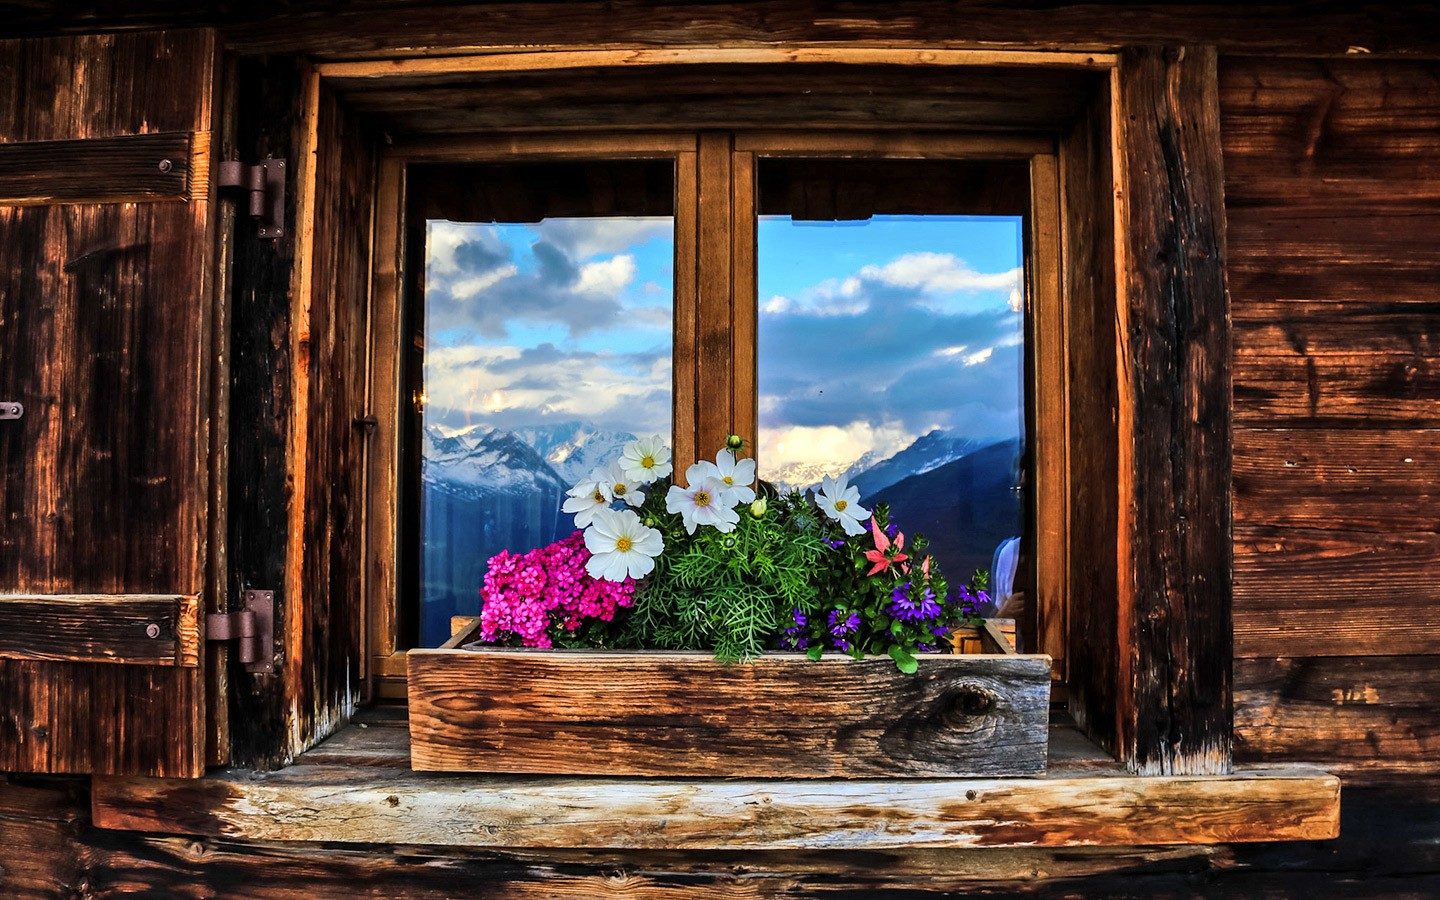 Window box with flowers in Swiss mountain chalet